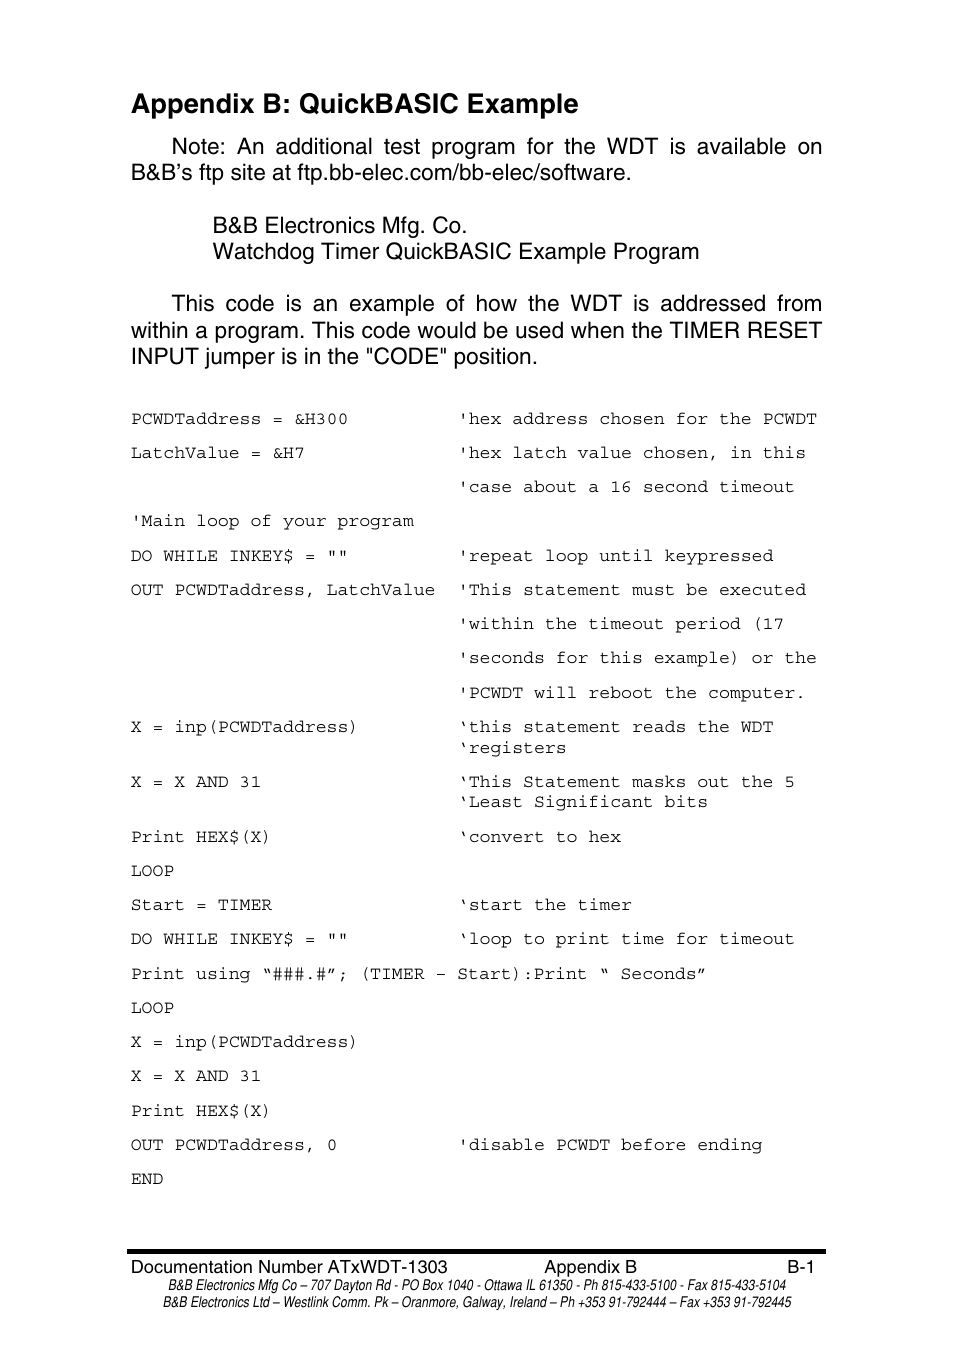 Appendix B Quickbasic Example Bb Electronics Pc Watchdog Timer Card Atrwdt User Manual Page 22 23